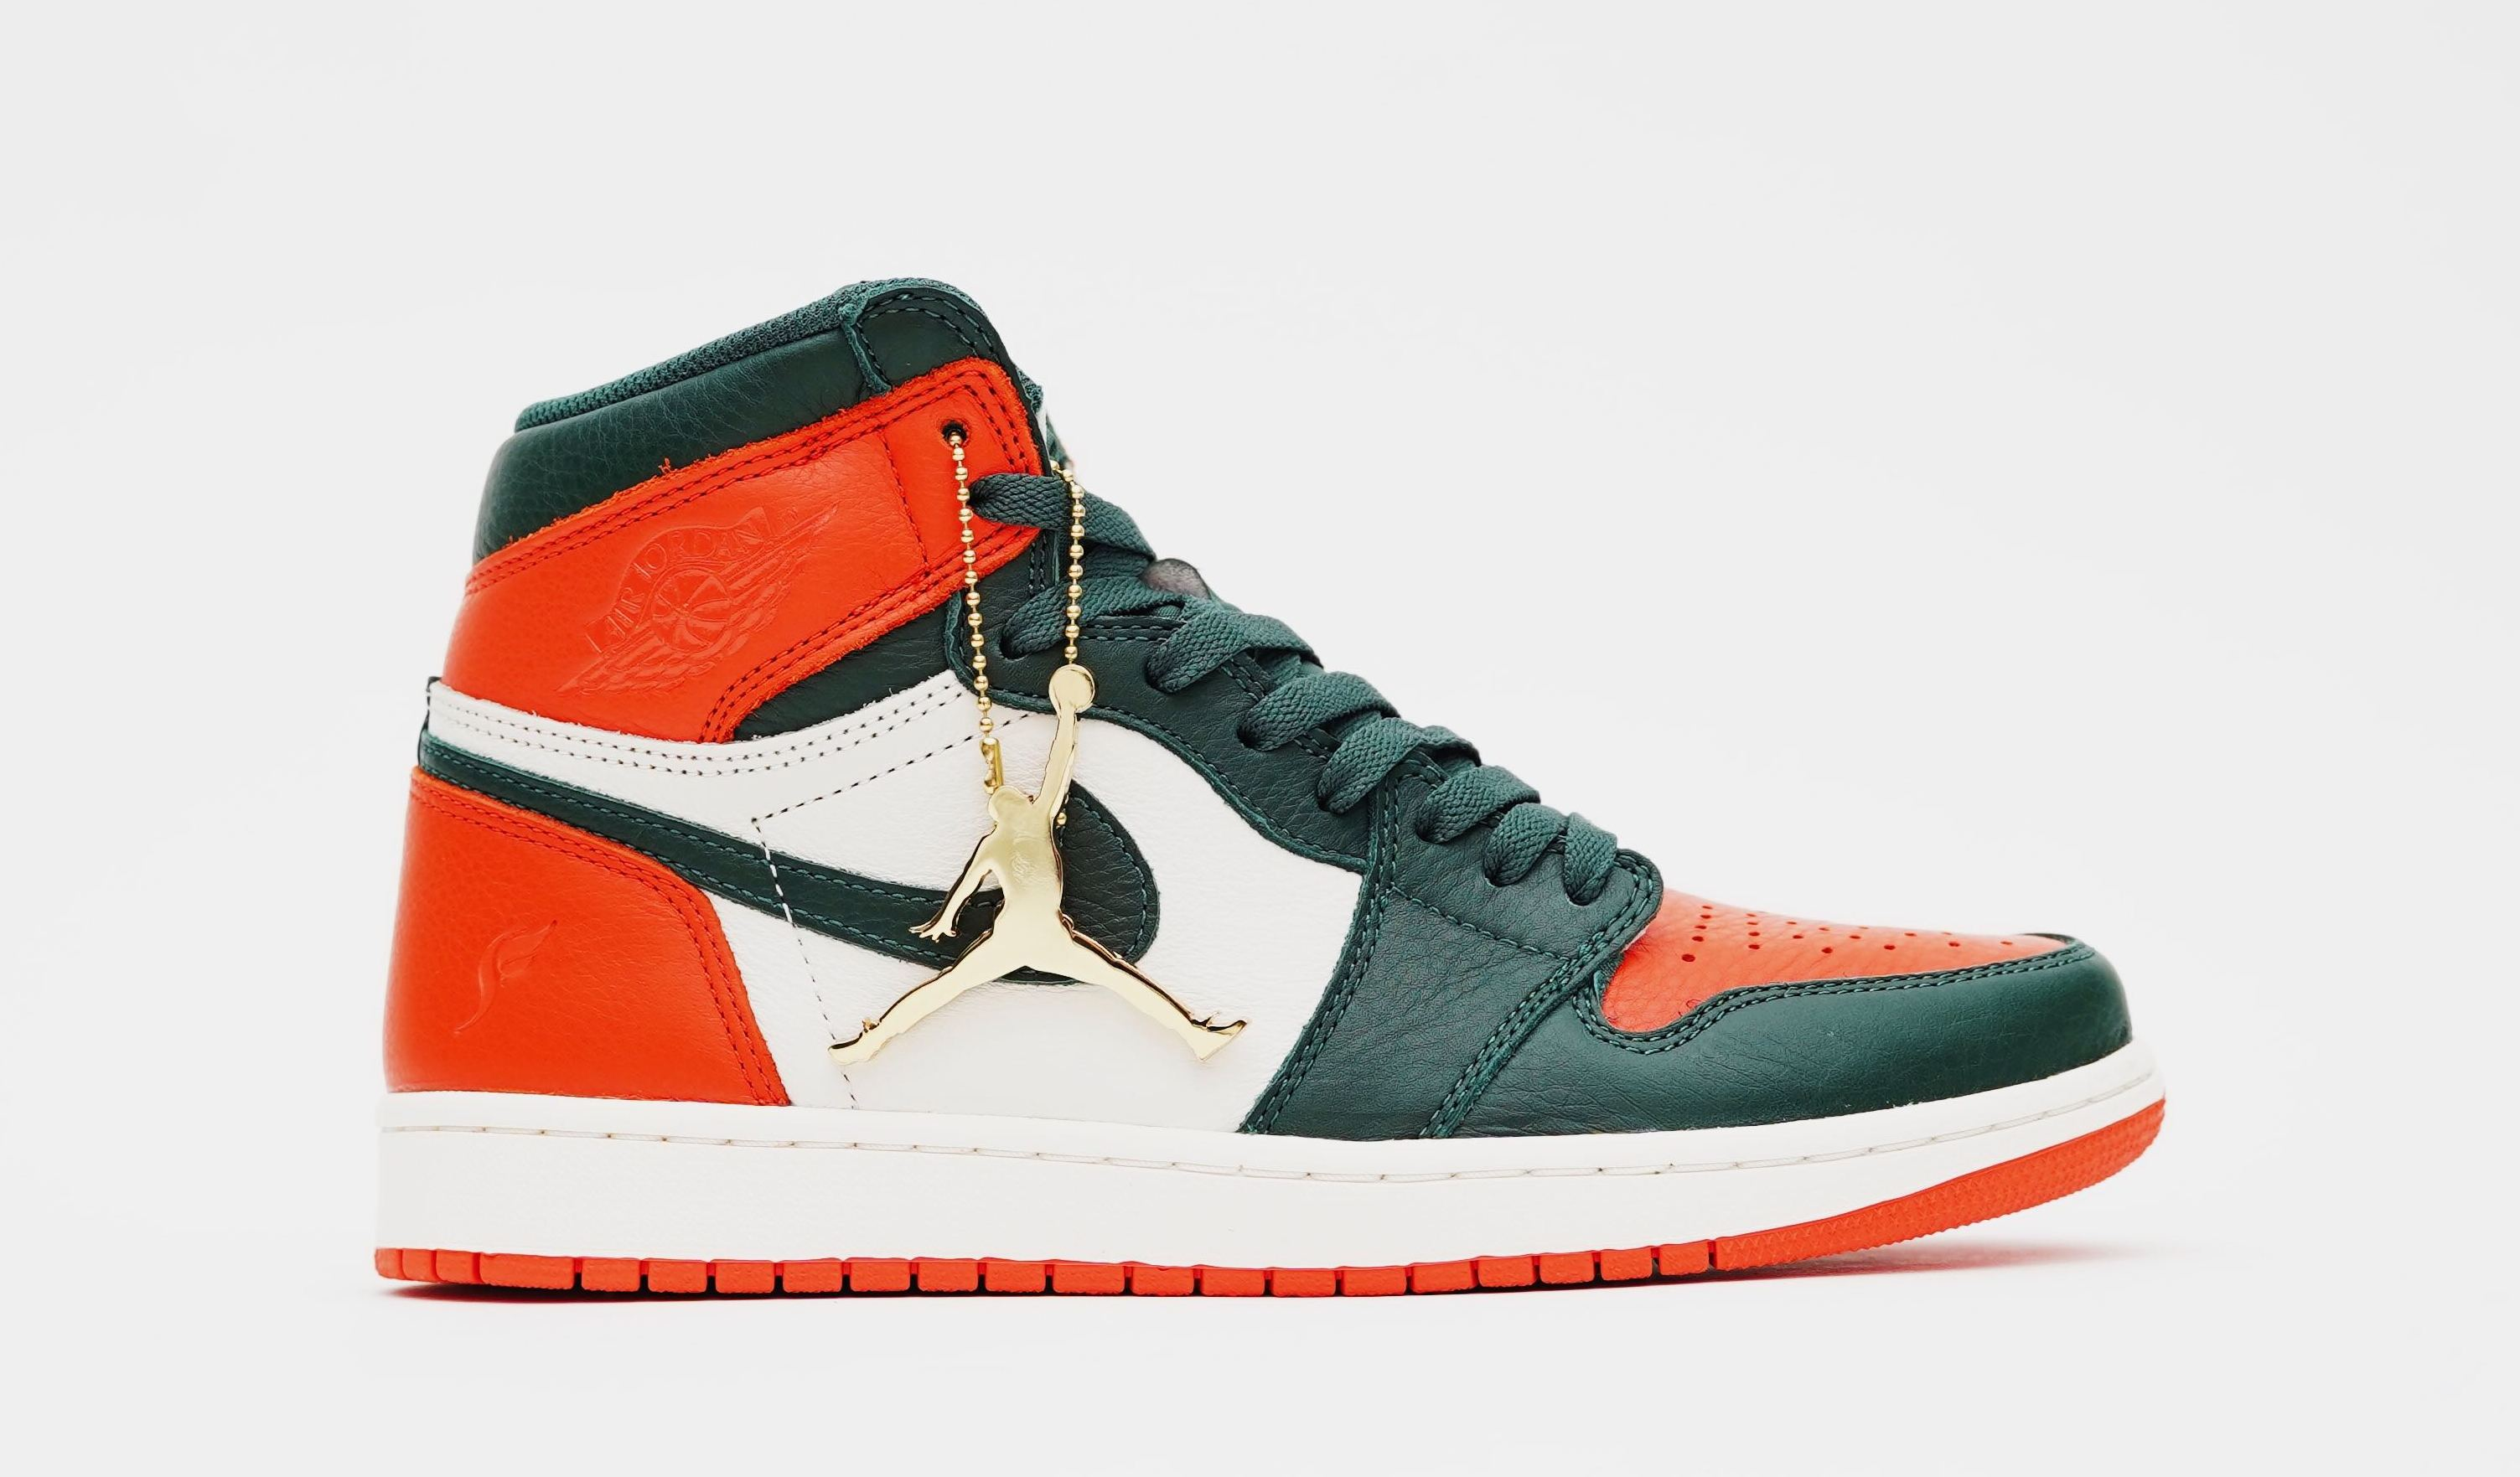 eb79ae08573 Police Shuts Down Limited Air Jordan 1 Release | Sole Collector